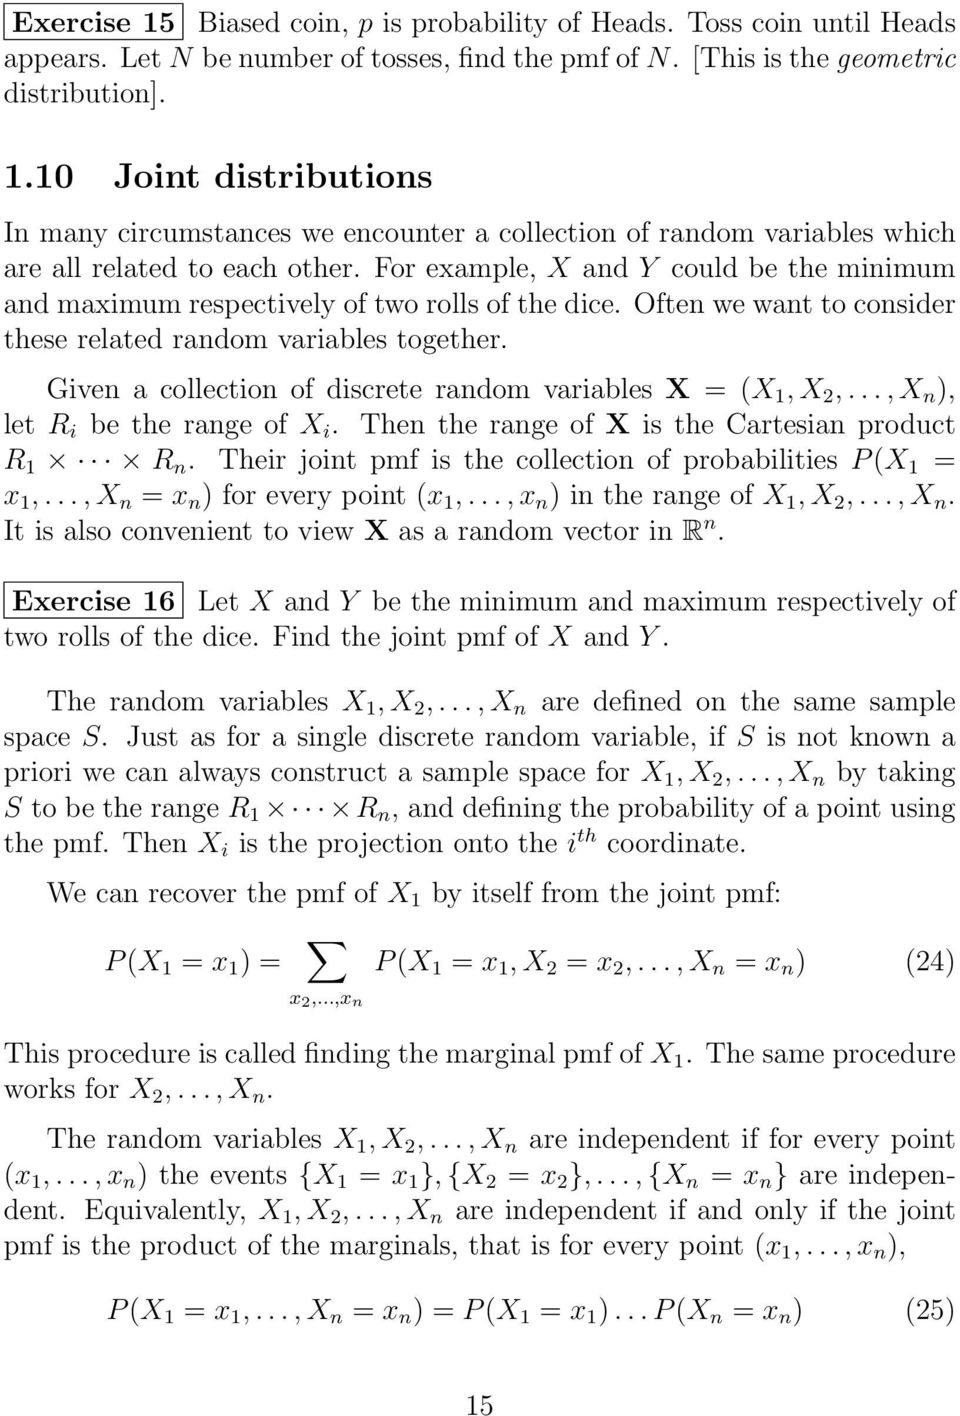 Given a collection of discrete random variables X = (X 1, X 2,..., X n ), let R i be the range of X i. Then the range of X is the Cartesian product R 1 R n.